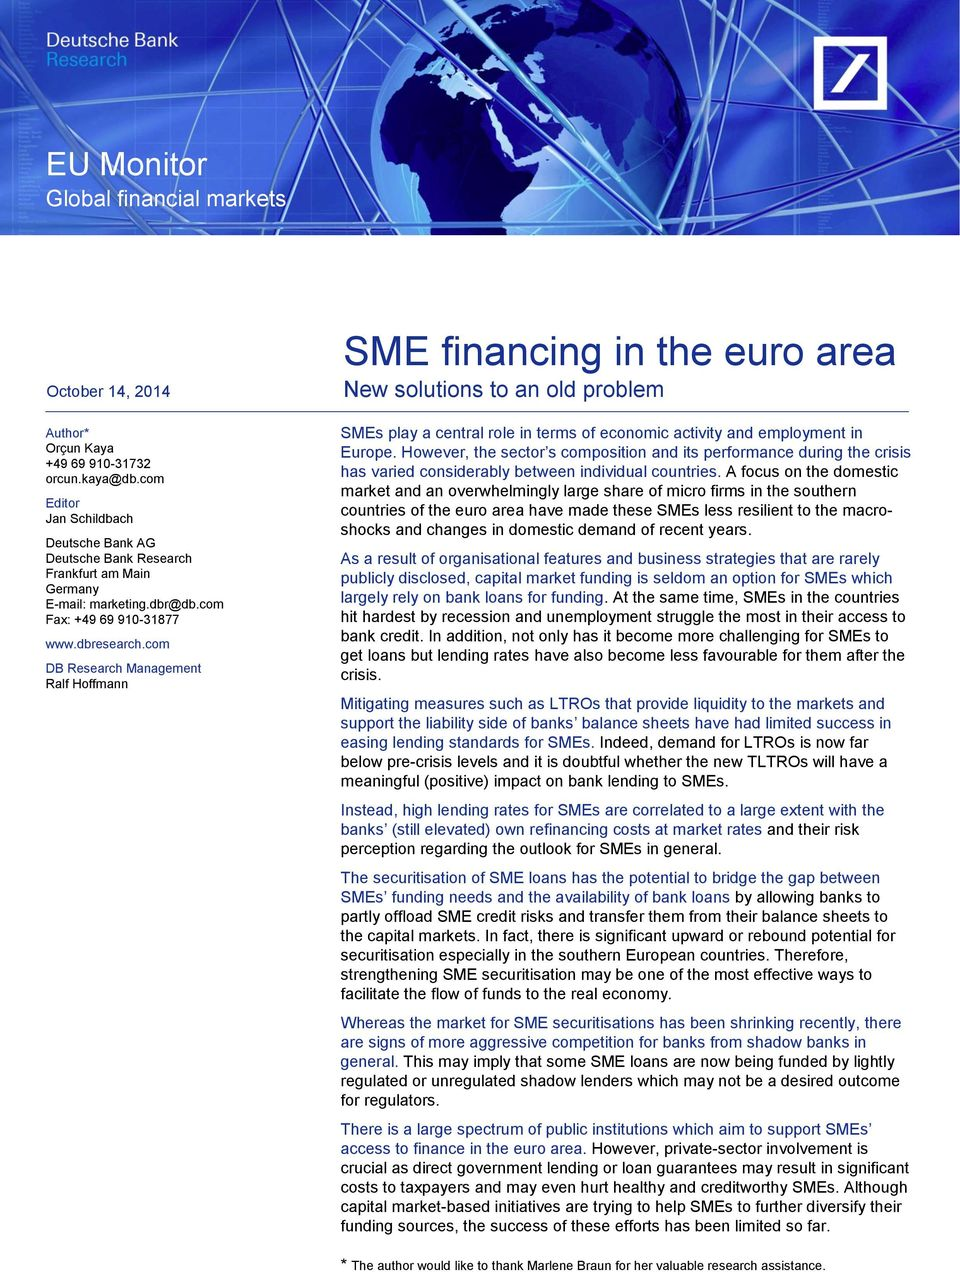 com DB Research Management Ralf Hoffmann SME financing in the euro area New solutions to an old problem SMEs play a central role in terms of economic activity and employment in Europe.